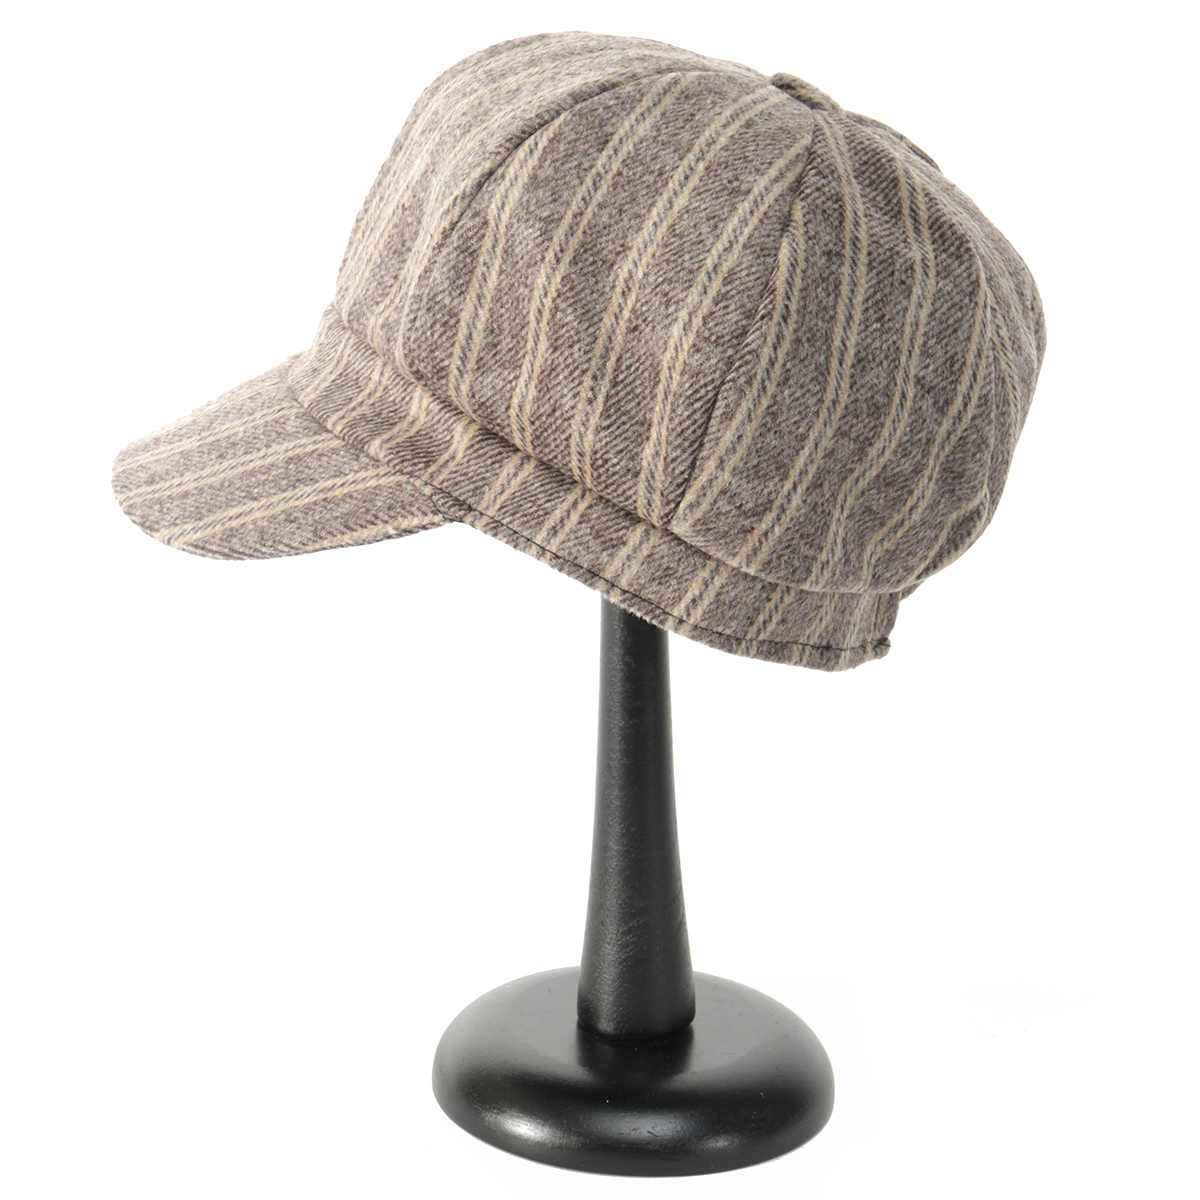 Tan Railroad Cap 50sp